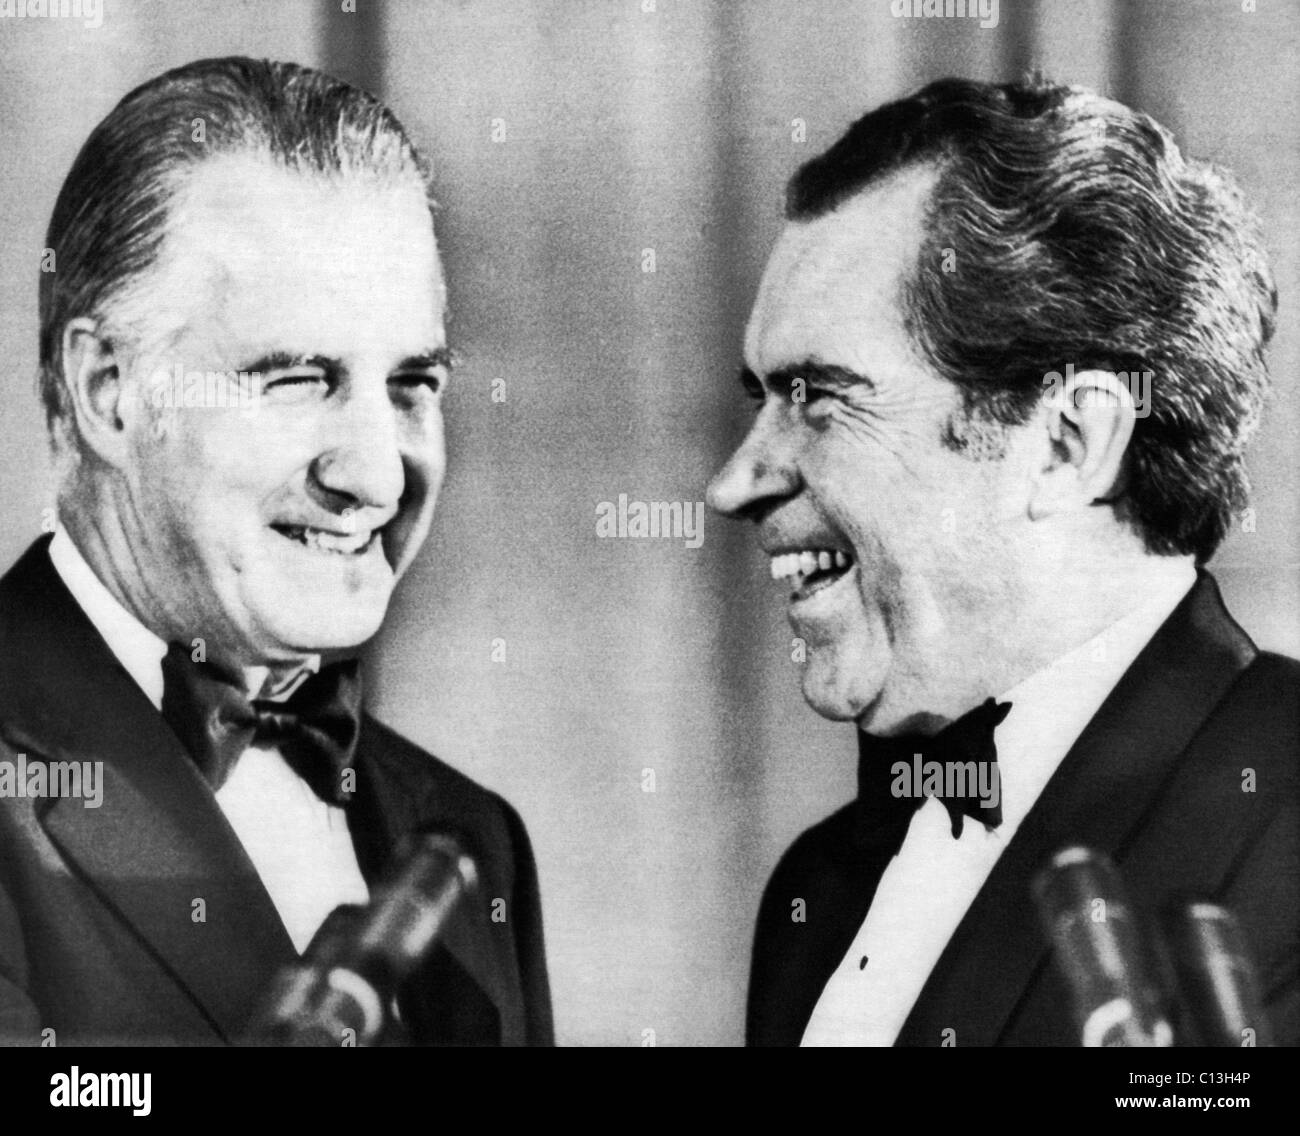 Nixon Presidency.  Vice President Spiro Agnew and US President Richard Nixon speaking before a gathering of Republican - Stock Image